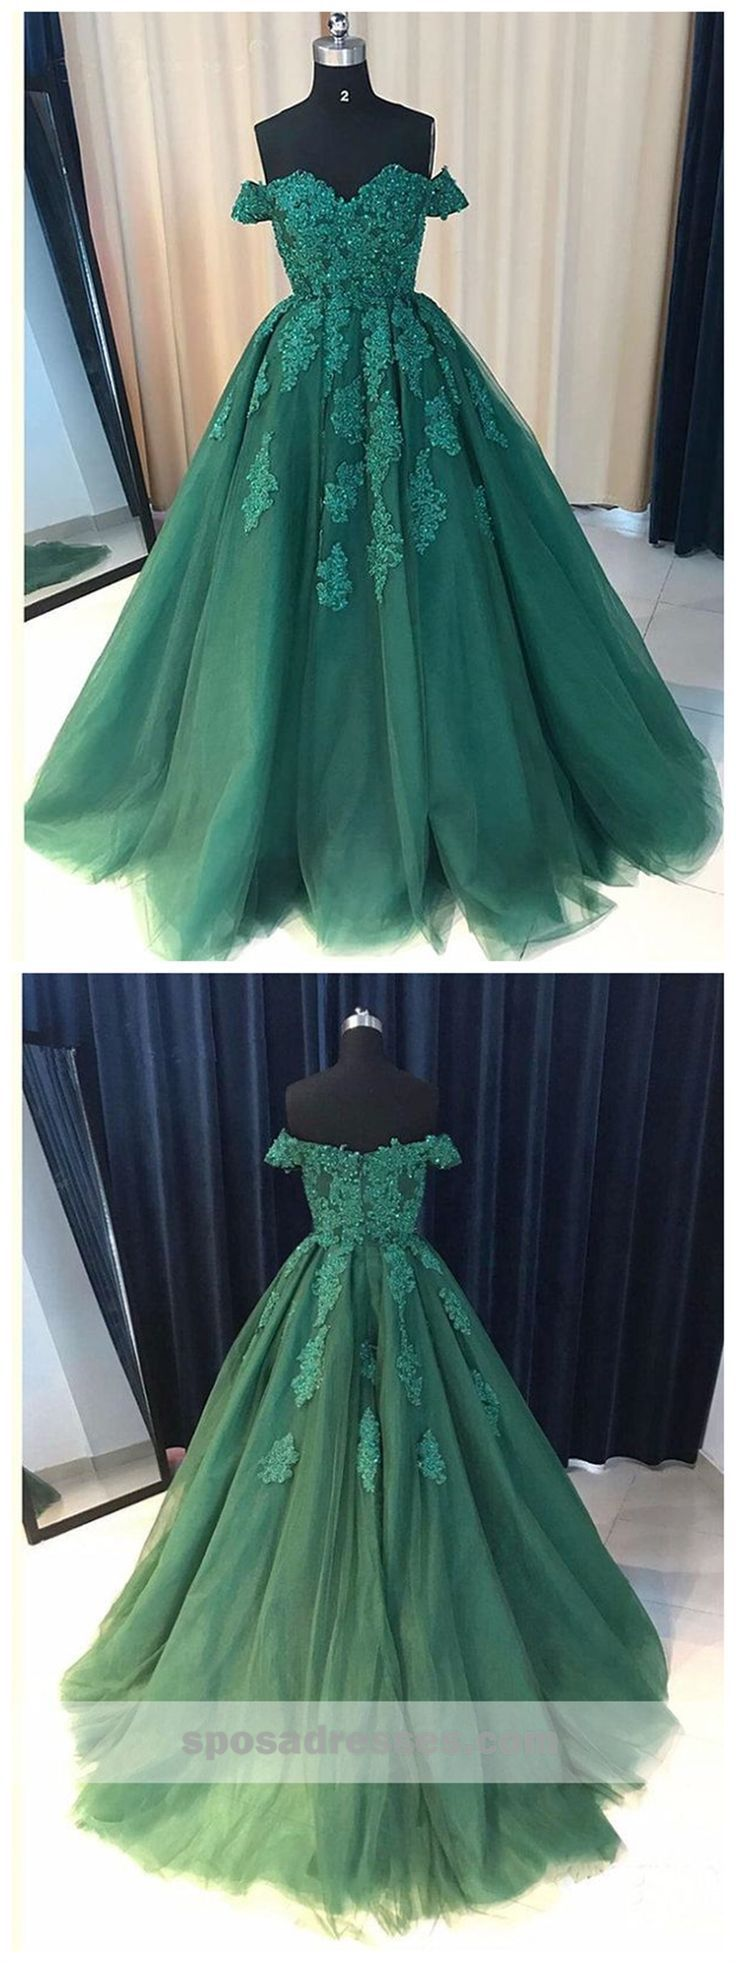 Off shoulder emerald green lace a line long custom evening prom